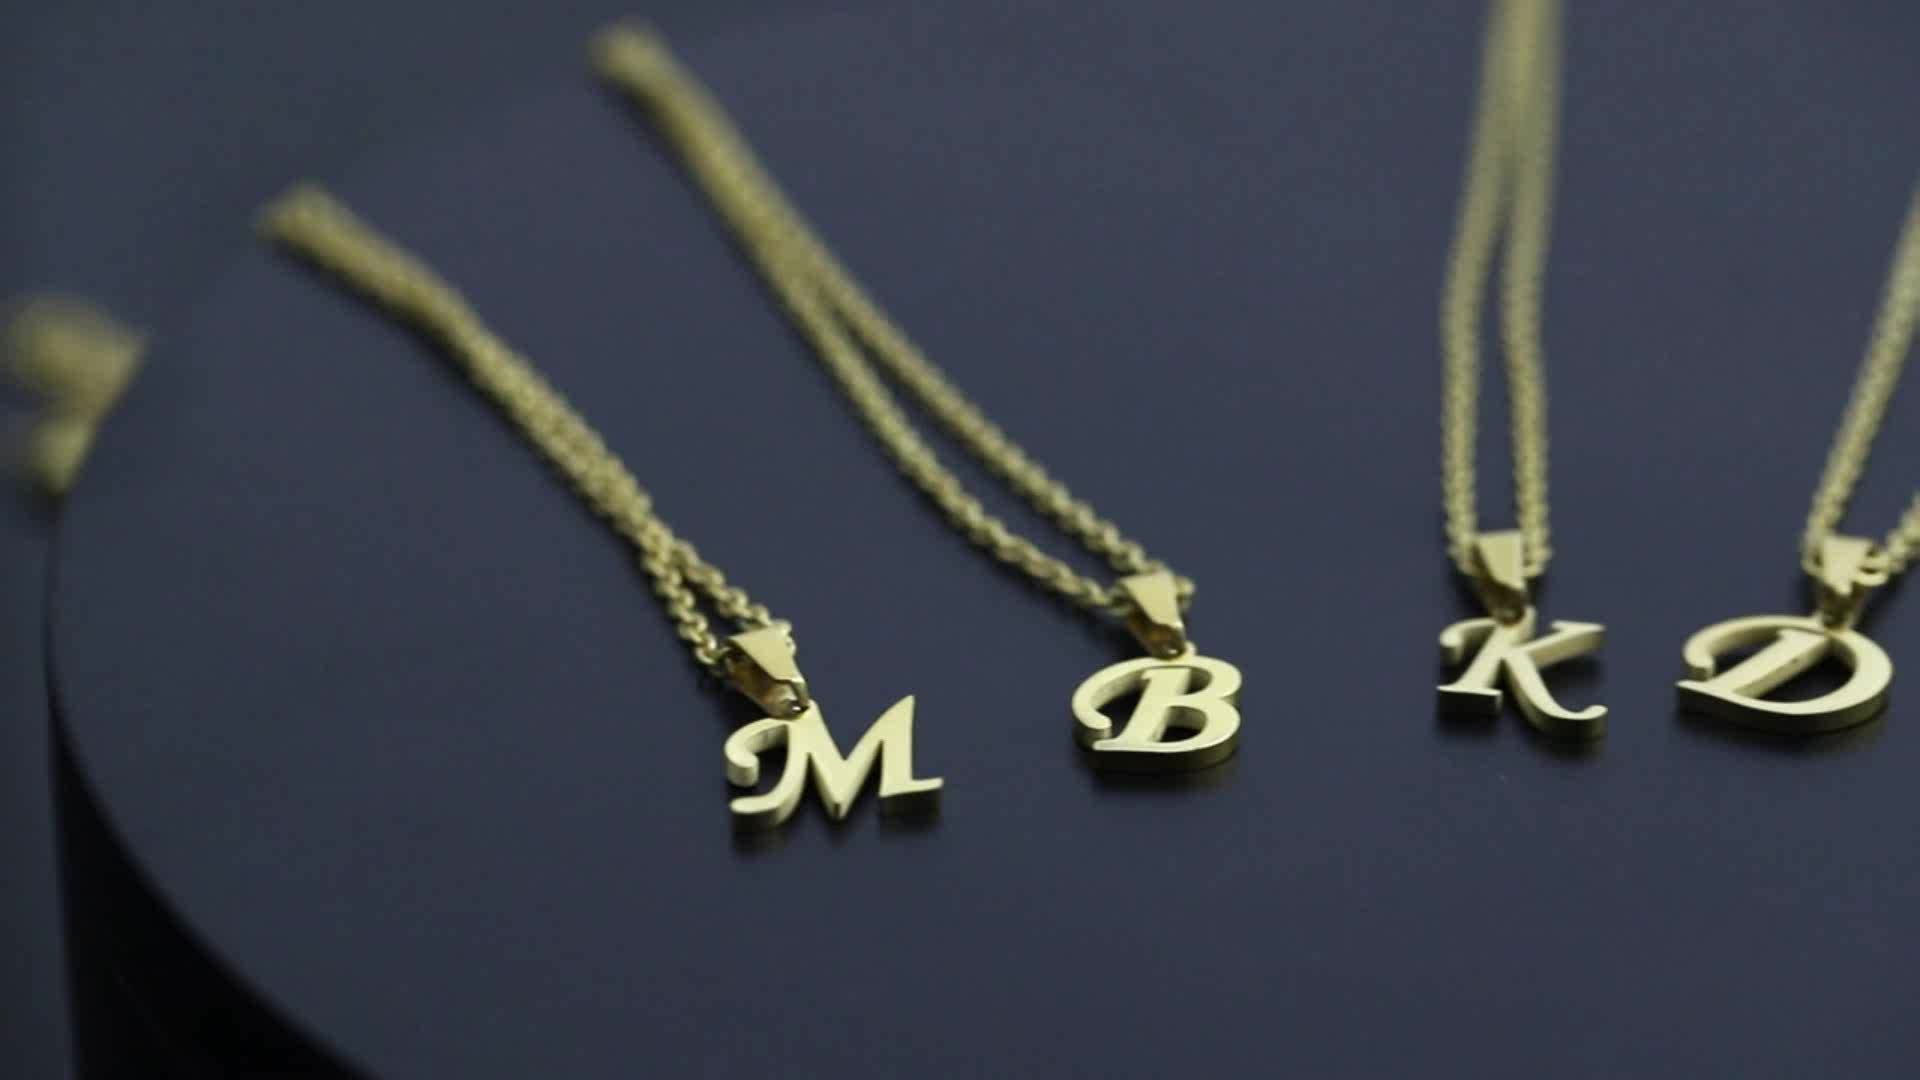 Fashion Jewellery Stainless Steel Pendant Gold Plated Alphabet Custom Initial Letter Necklace